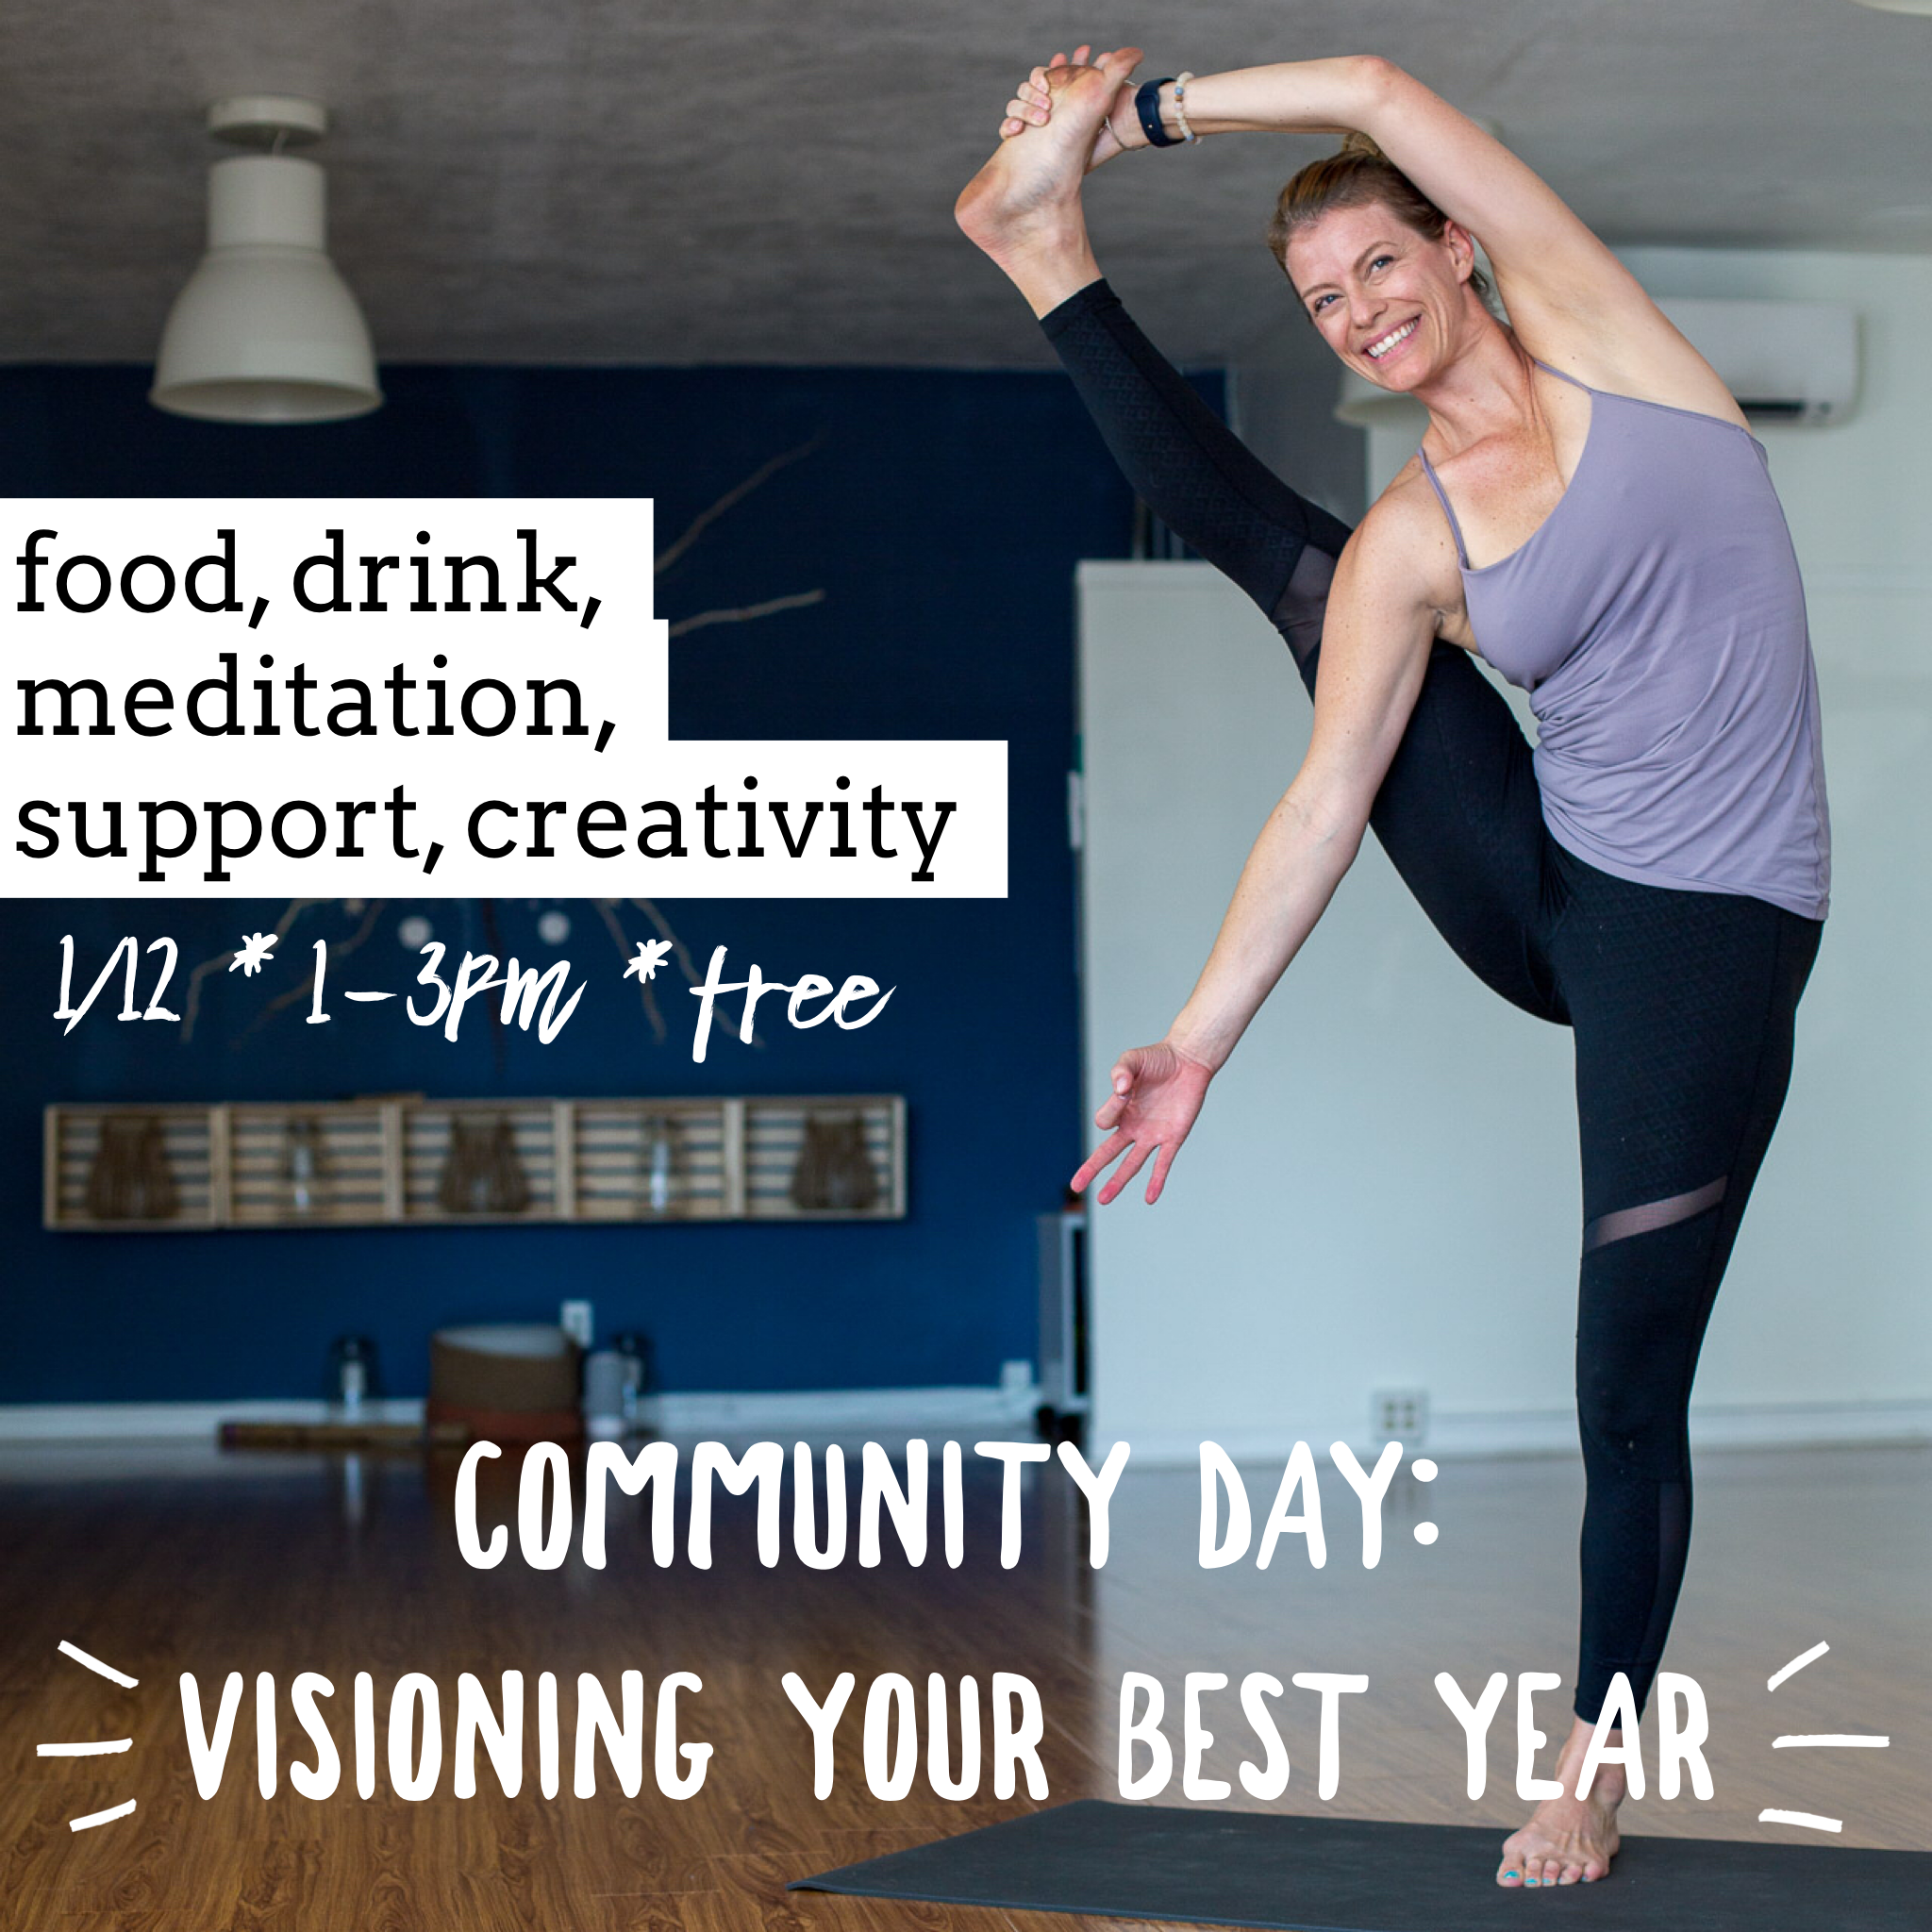 Community Day: Vision Your Best Year